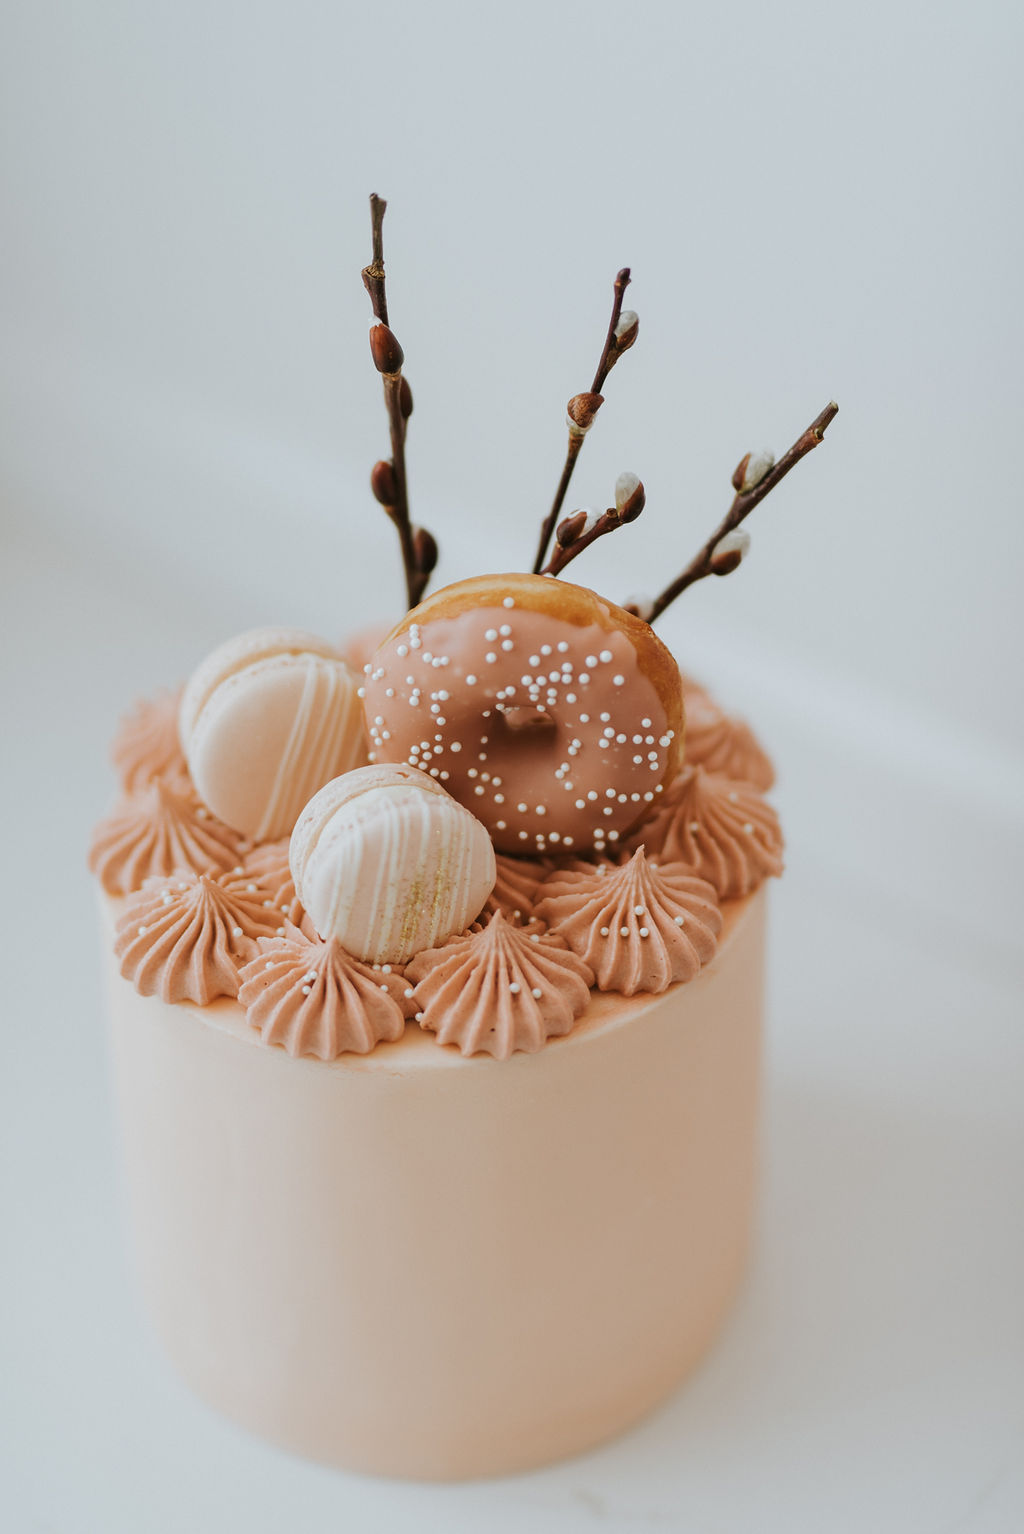 montreal_macarons_and_donuts_buttercream_cake_cupkateandco.jpg